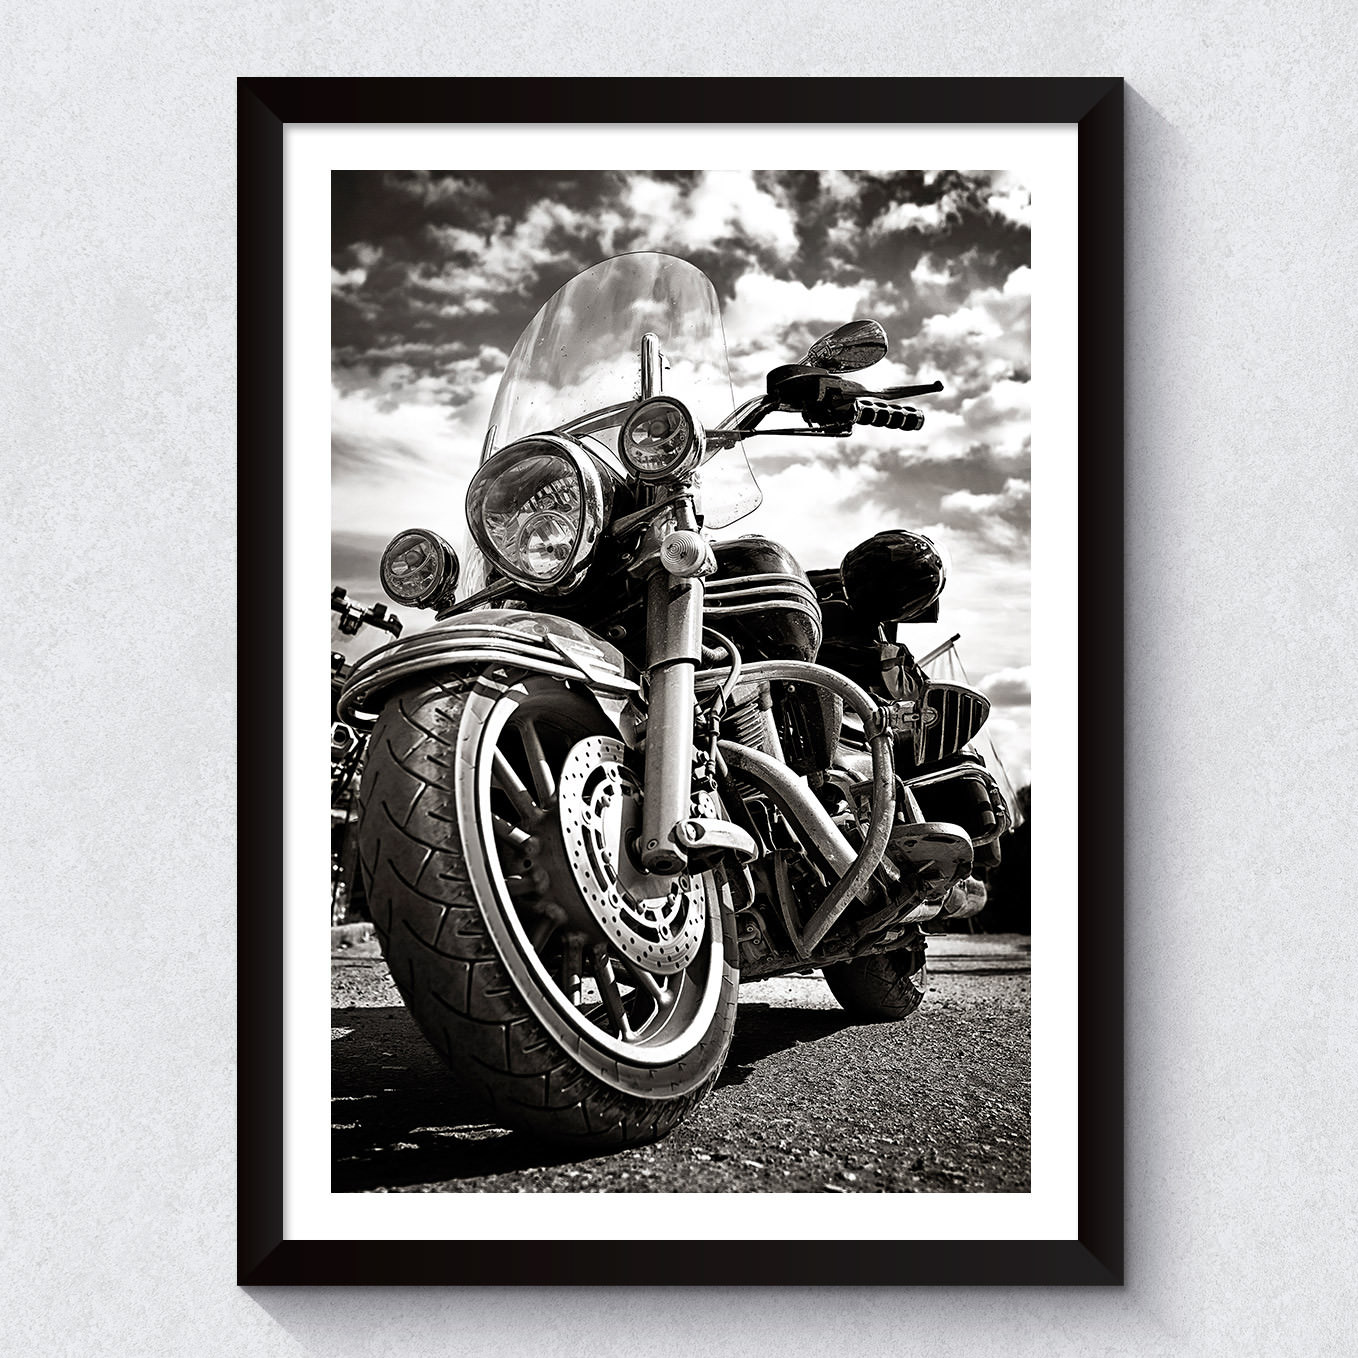 OUTLET - Quadro Decorativo Harley